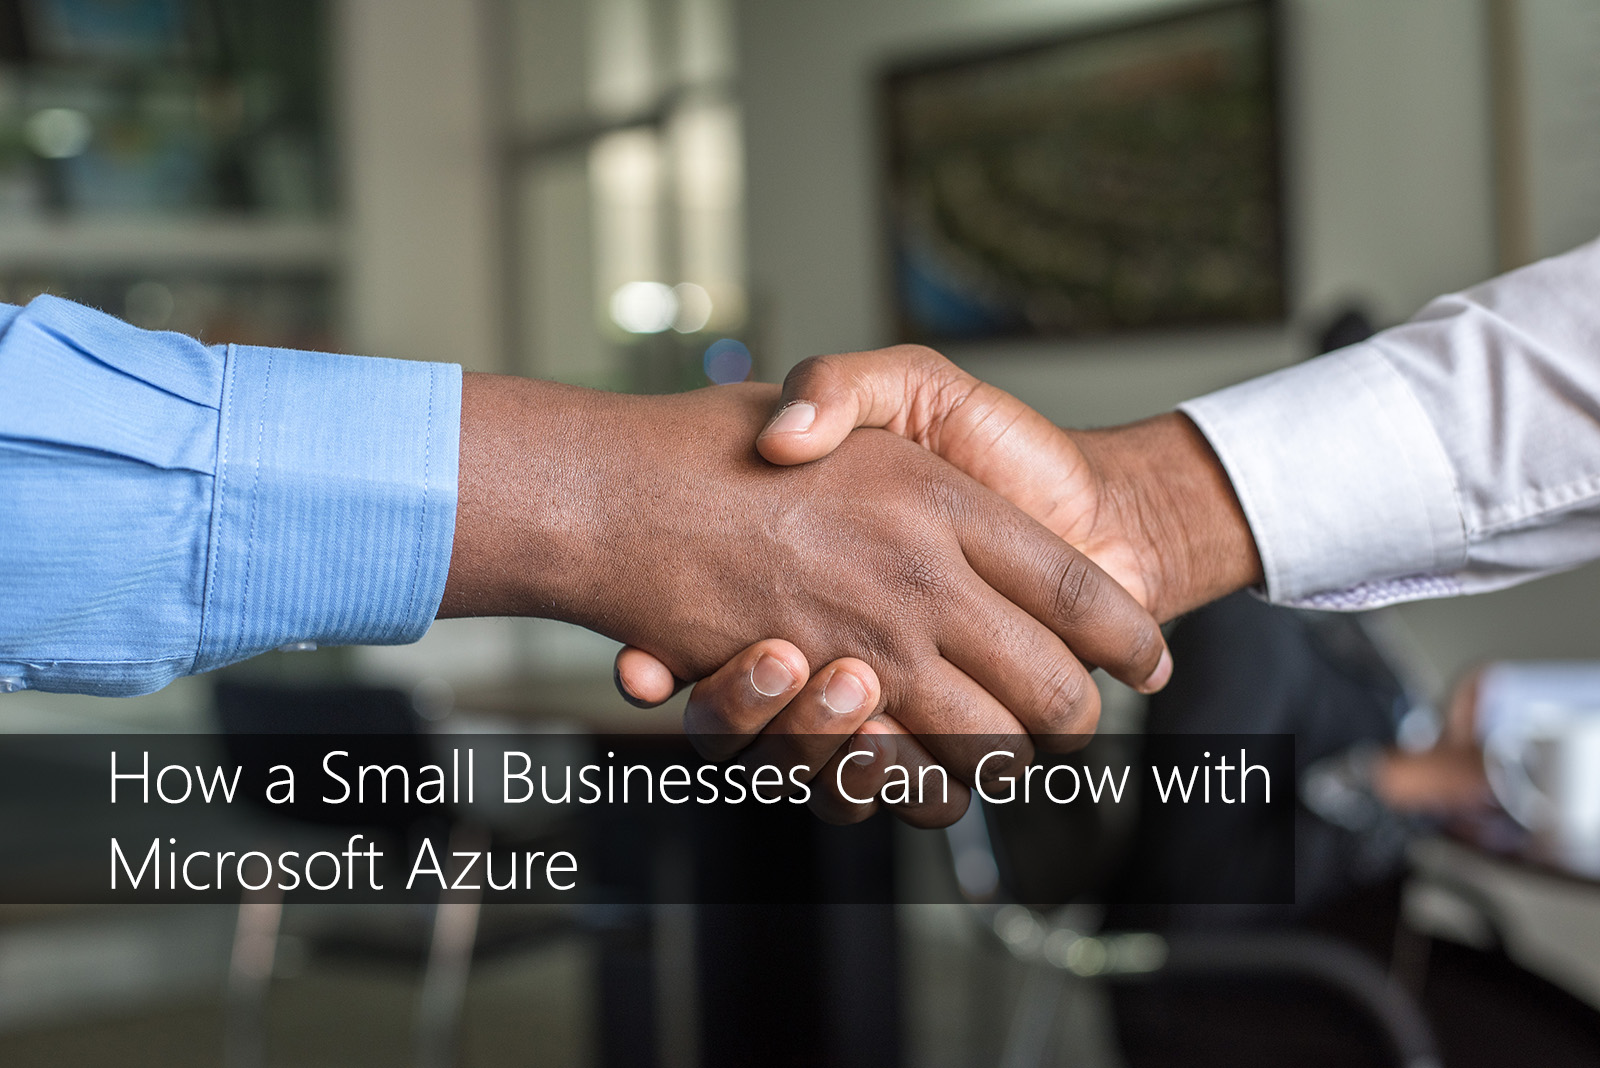 TMC-blog-how-a-small-businesses-can-grow-with-microsoft-azure